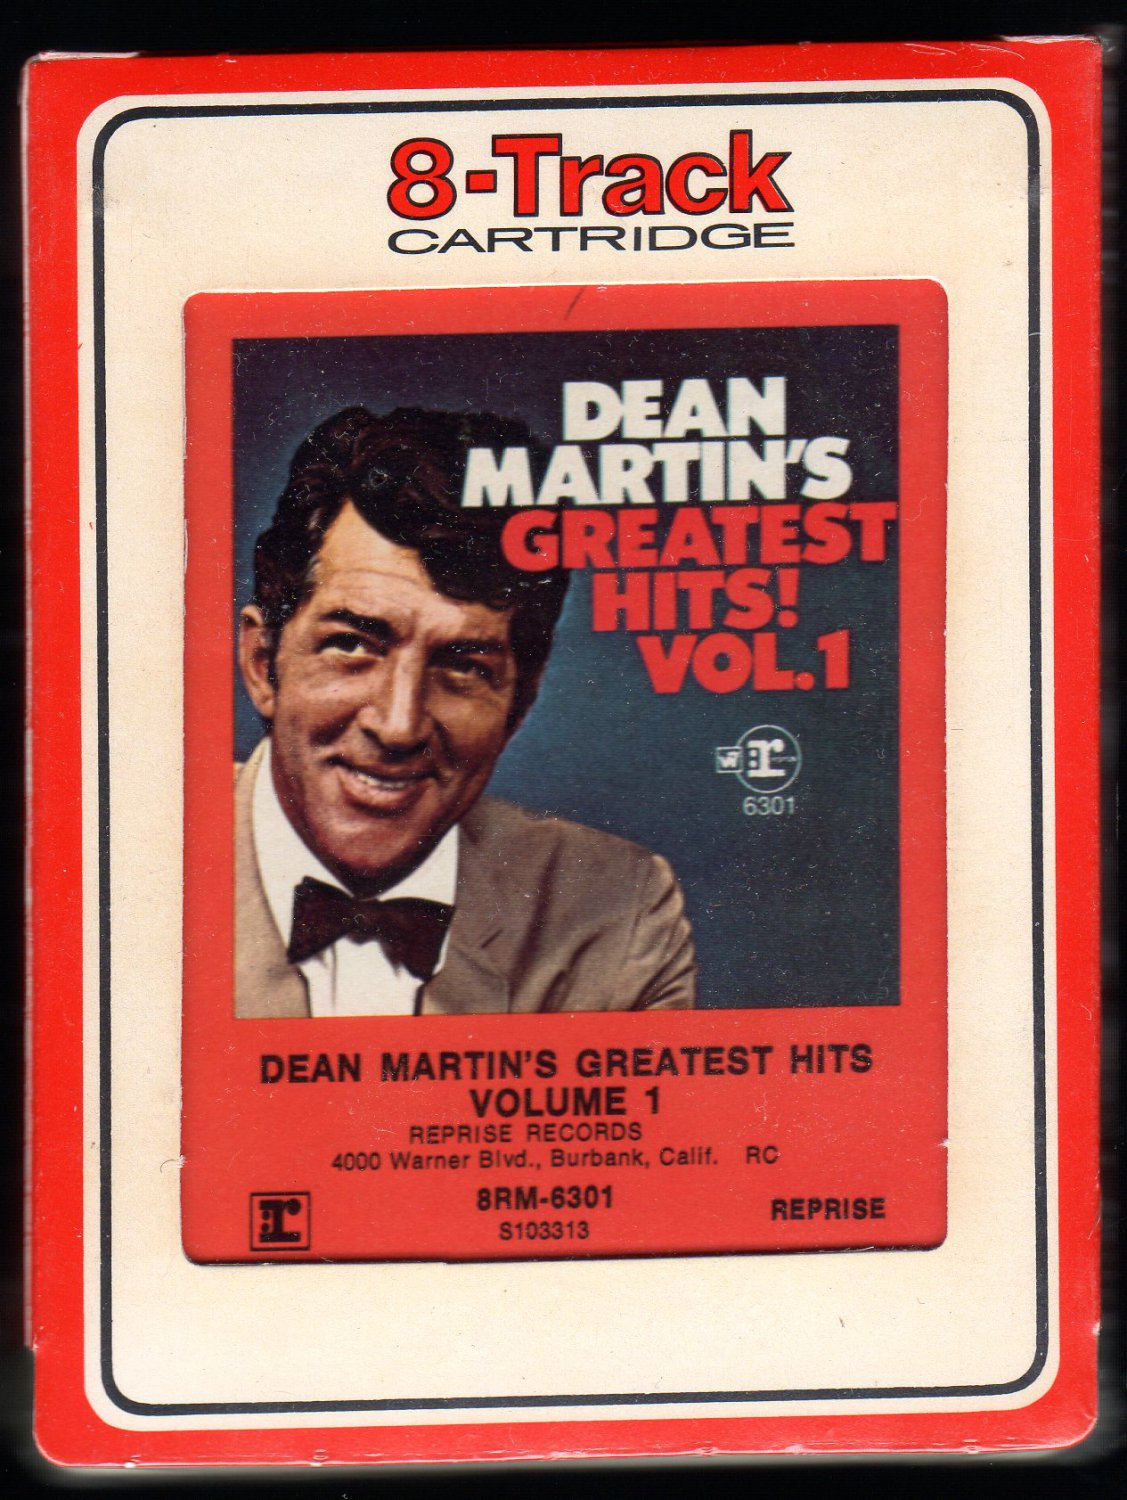 Dean Martin - Dean Martin's Greatest Hits Vol. 1 1968 RCA REPRISE Sealed Re-issue A32 8-TRACK TAPE